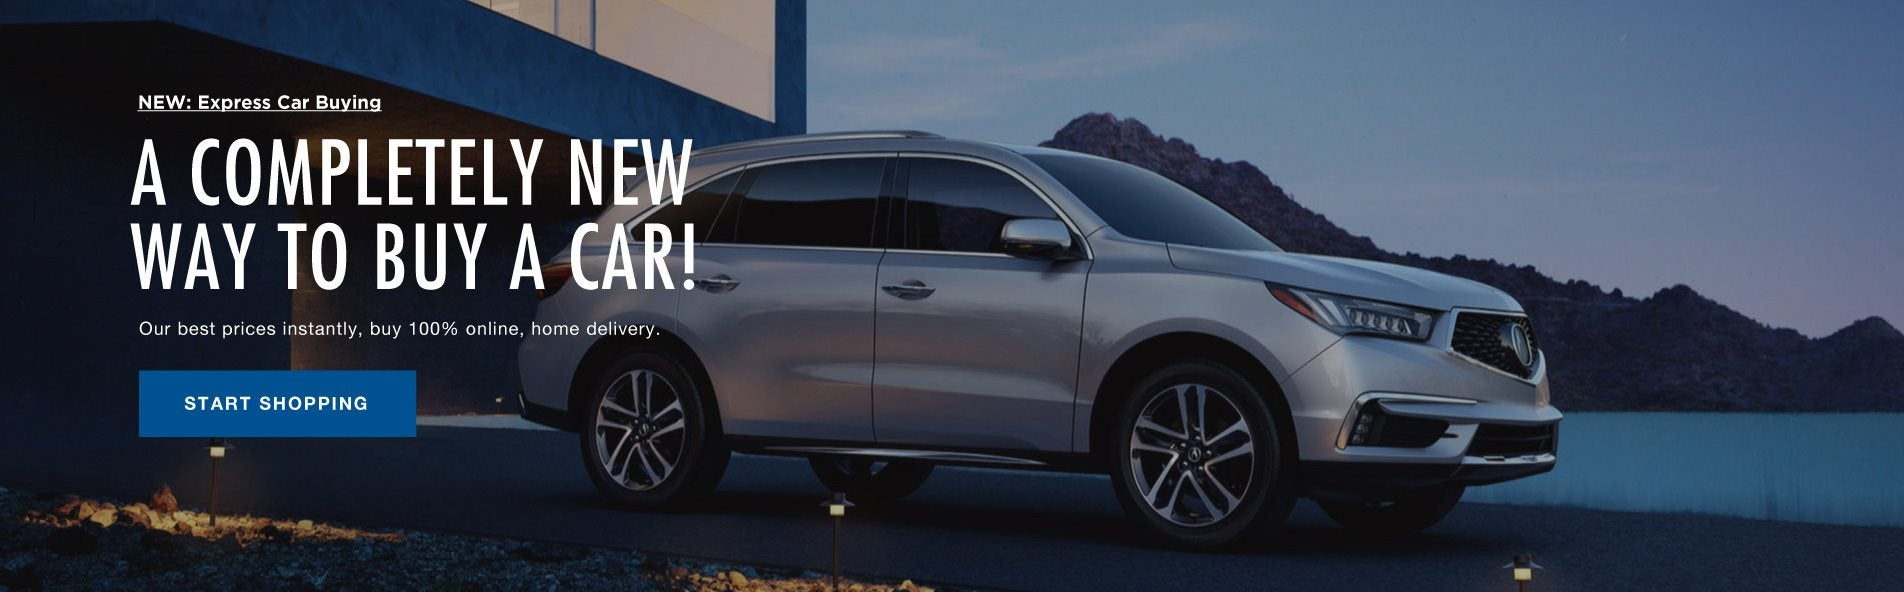 Acura Dealer in Bethesda MD 20814 | New & Used Cars | Chevy Chase Acura